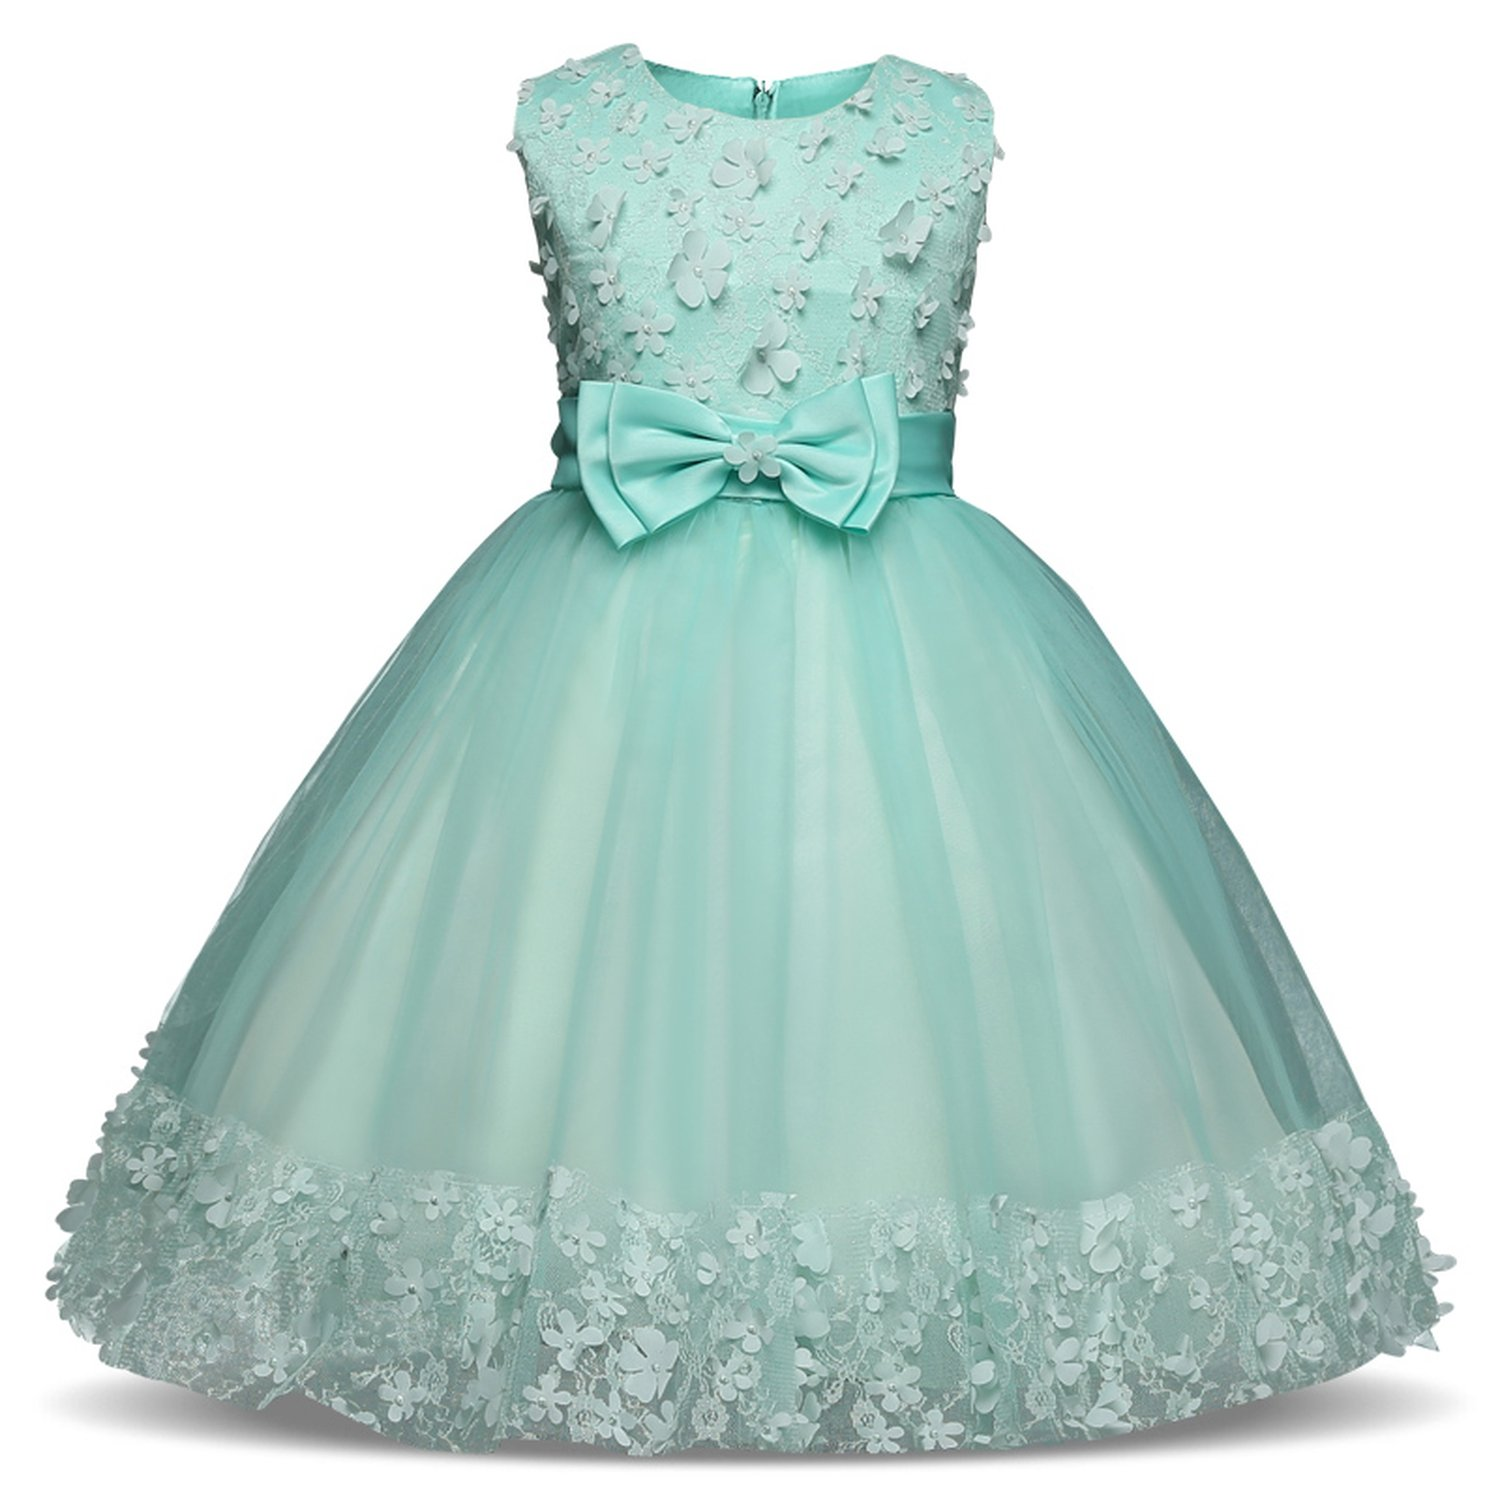 Girls Dress Mesh Pearls Children Wedding Party Dresses Kids Evening Ball Gowns Formal Baby Frocks Clothes for Girl 4-10Yrs, 6